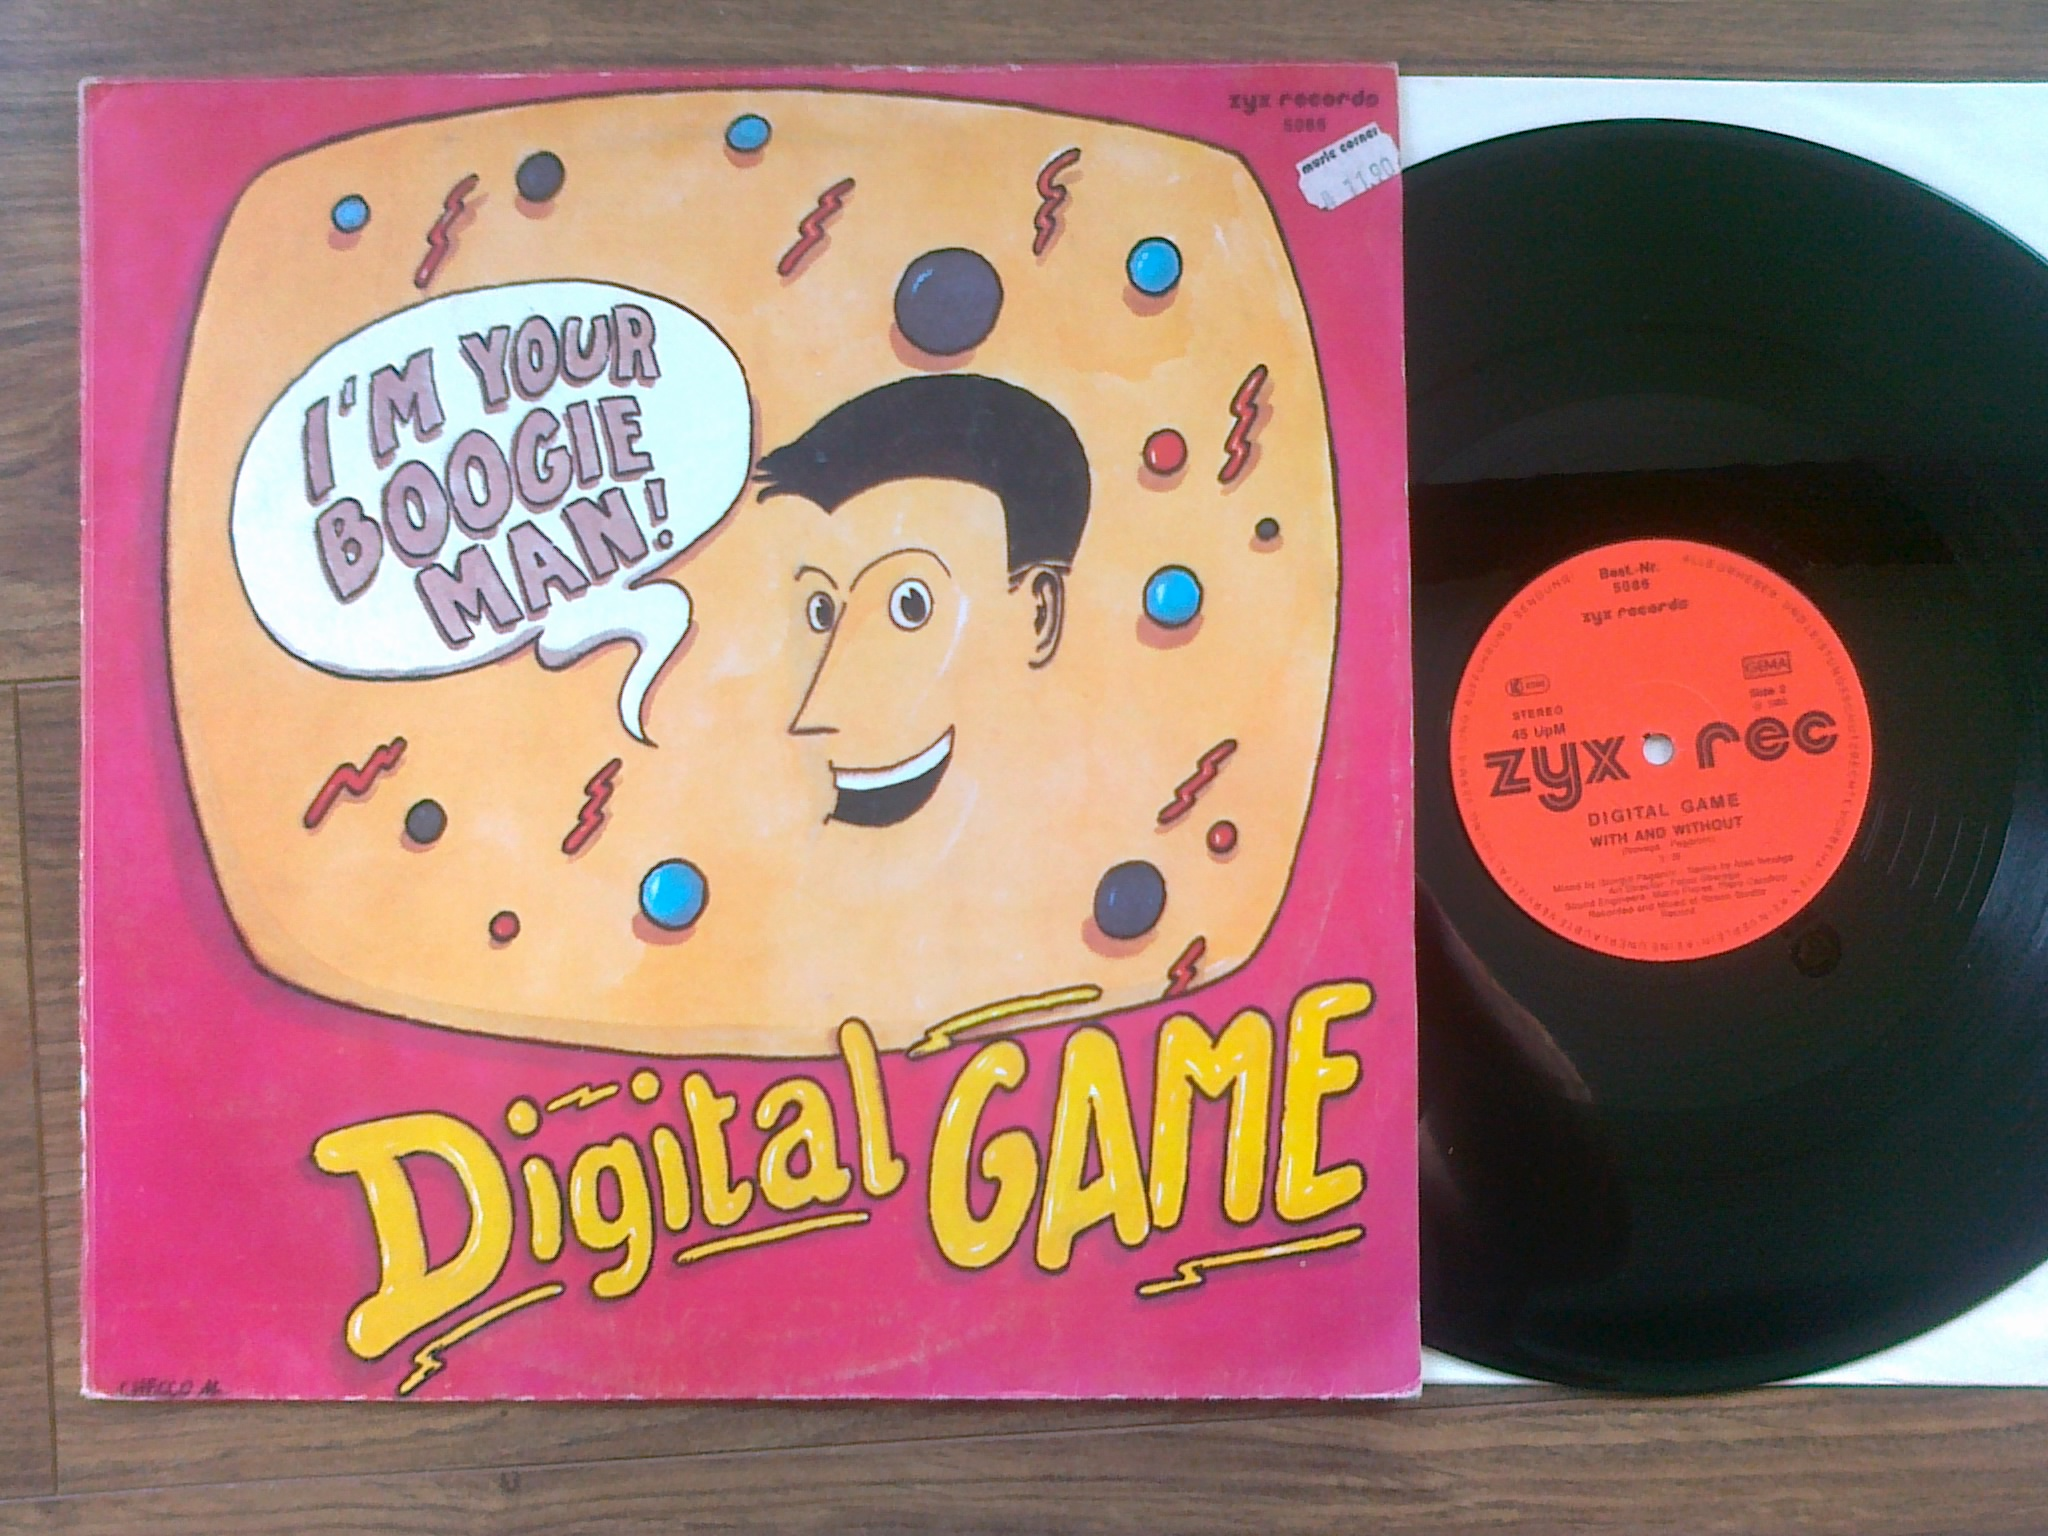 Digital Game - Im Your Boogie Man